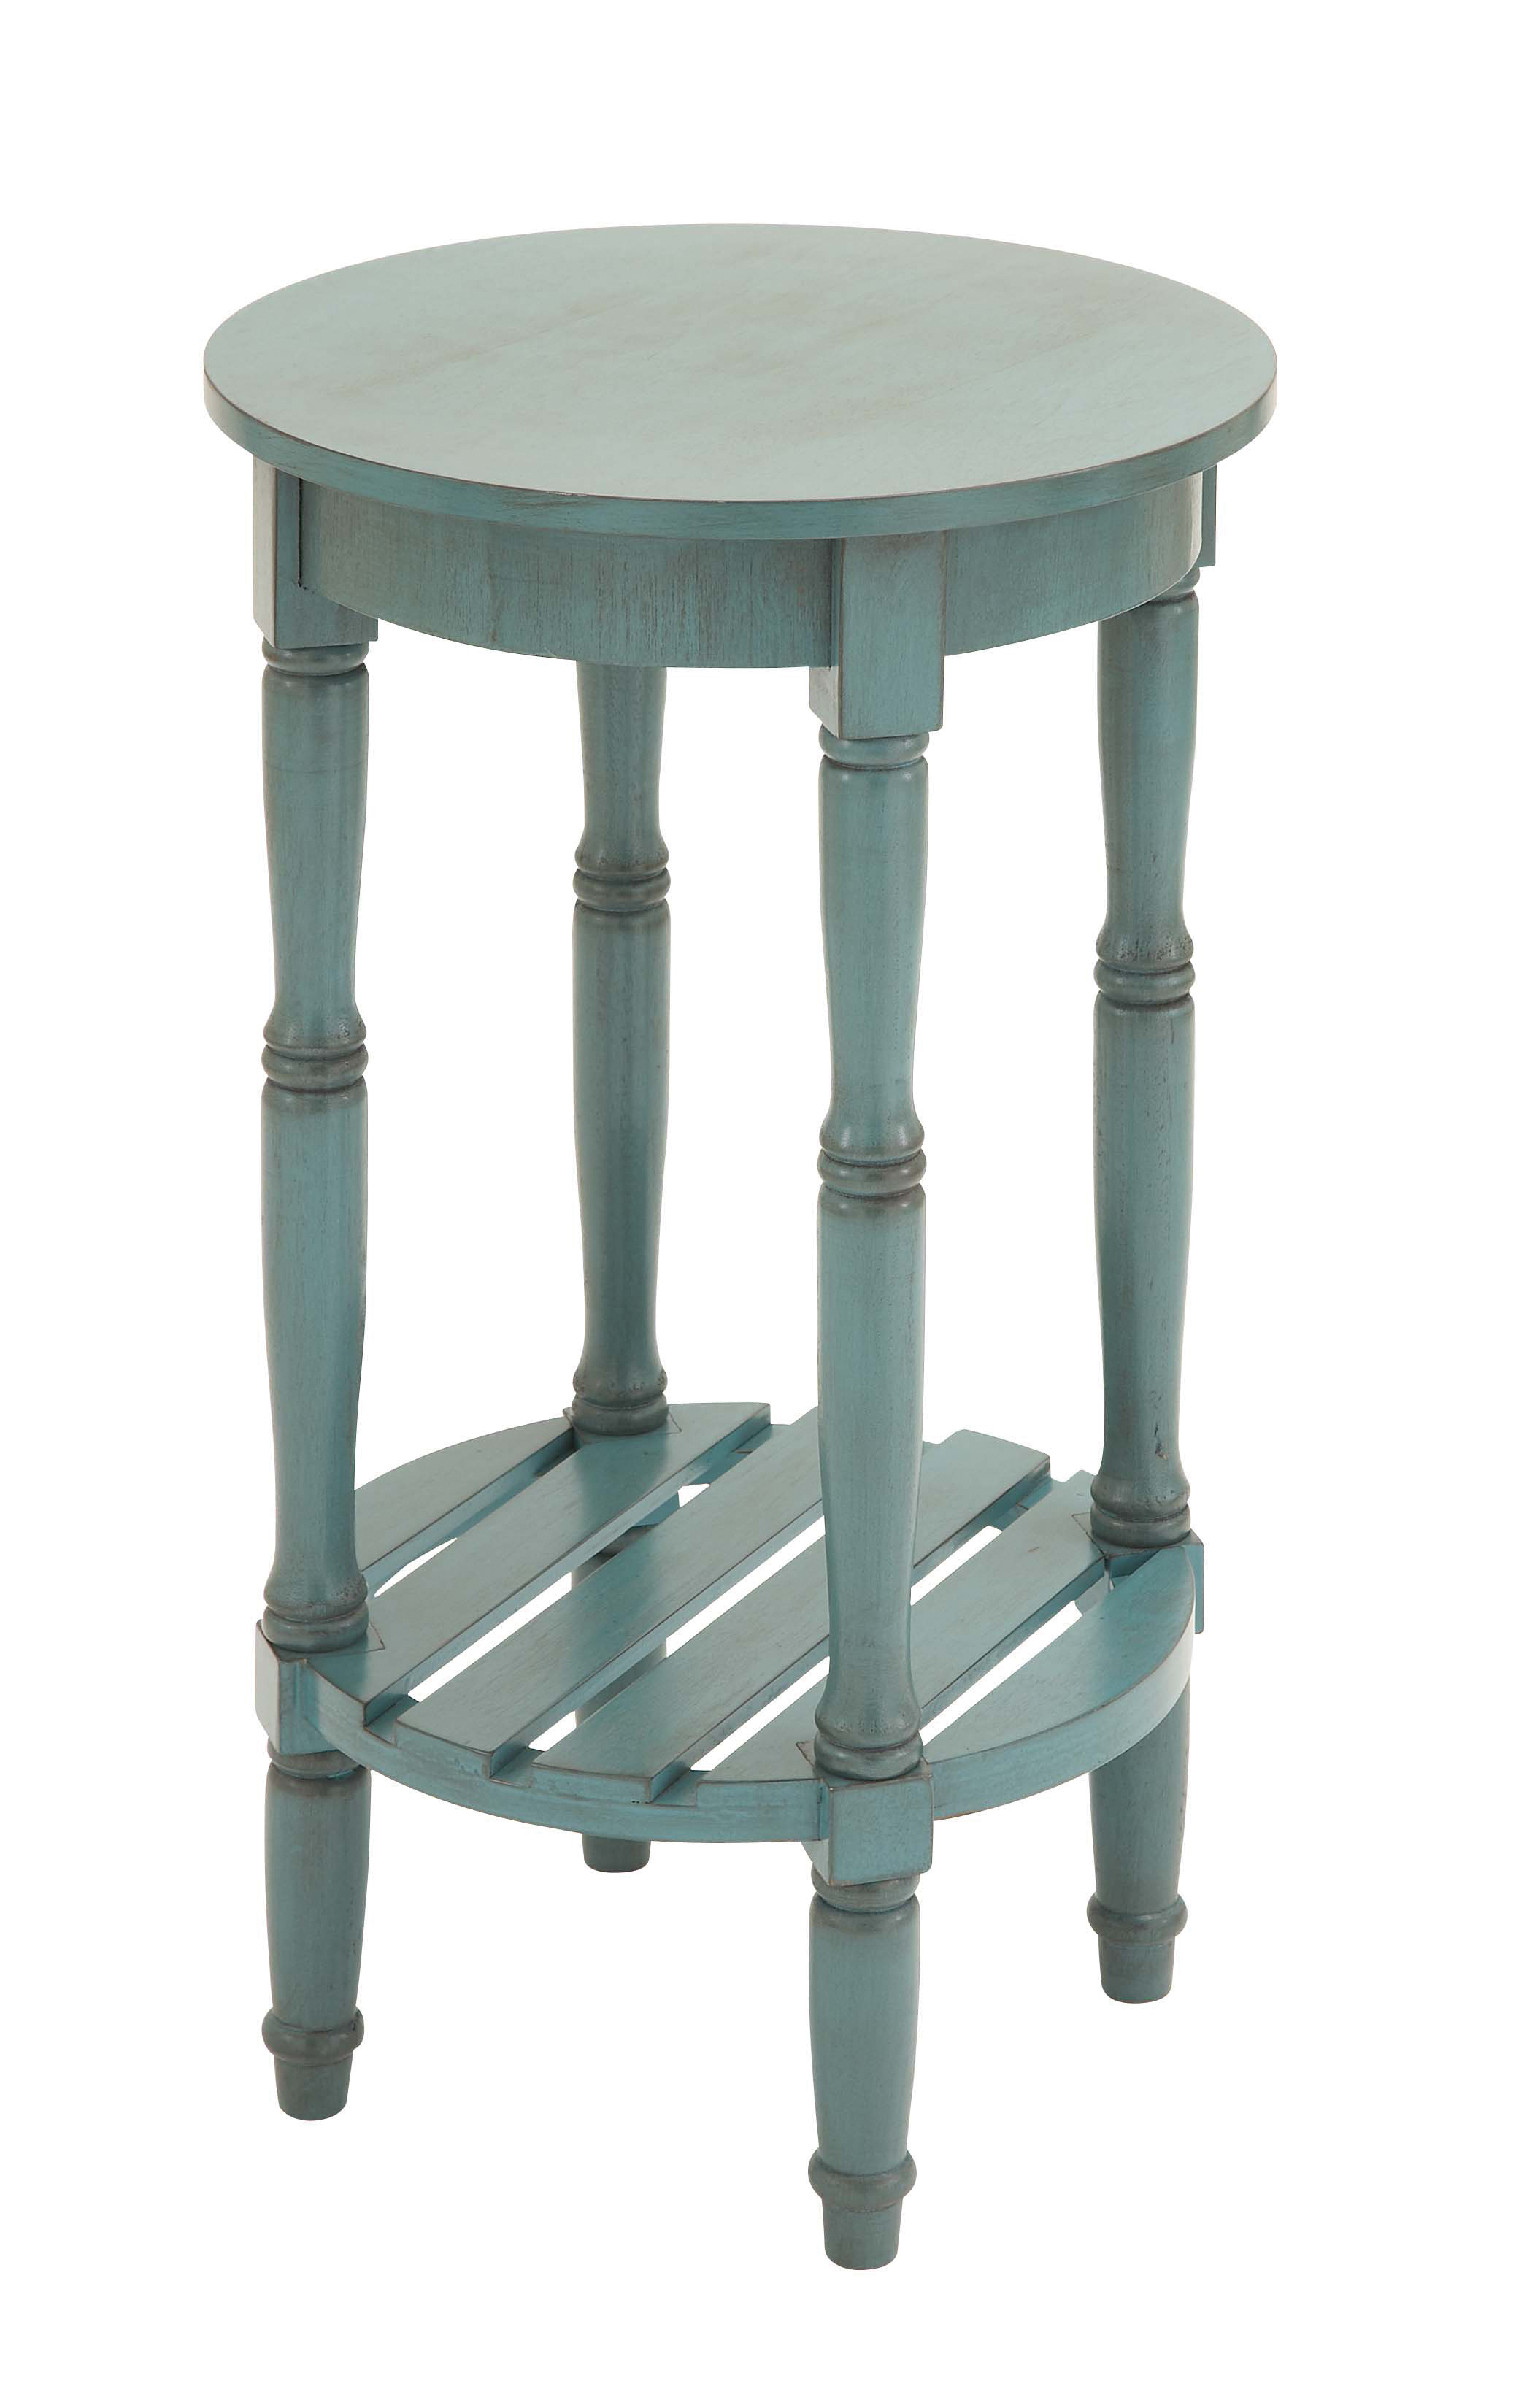 Decmode Farmhouse 29 Inch Distressed Wooden Round Accent Table, Teal by DecMode